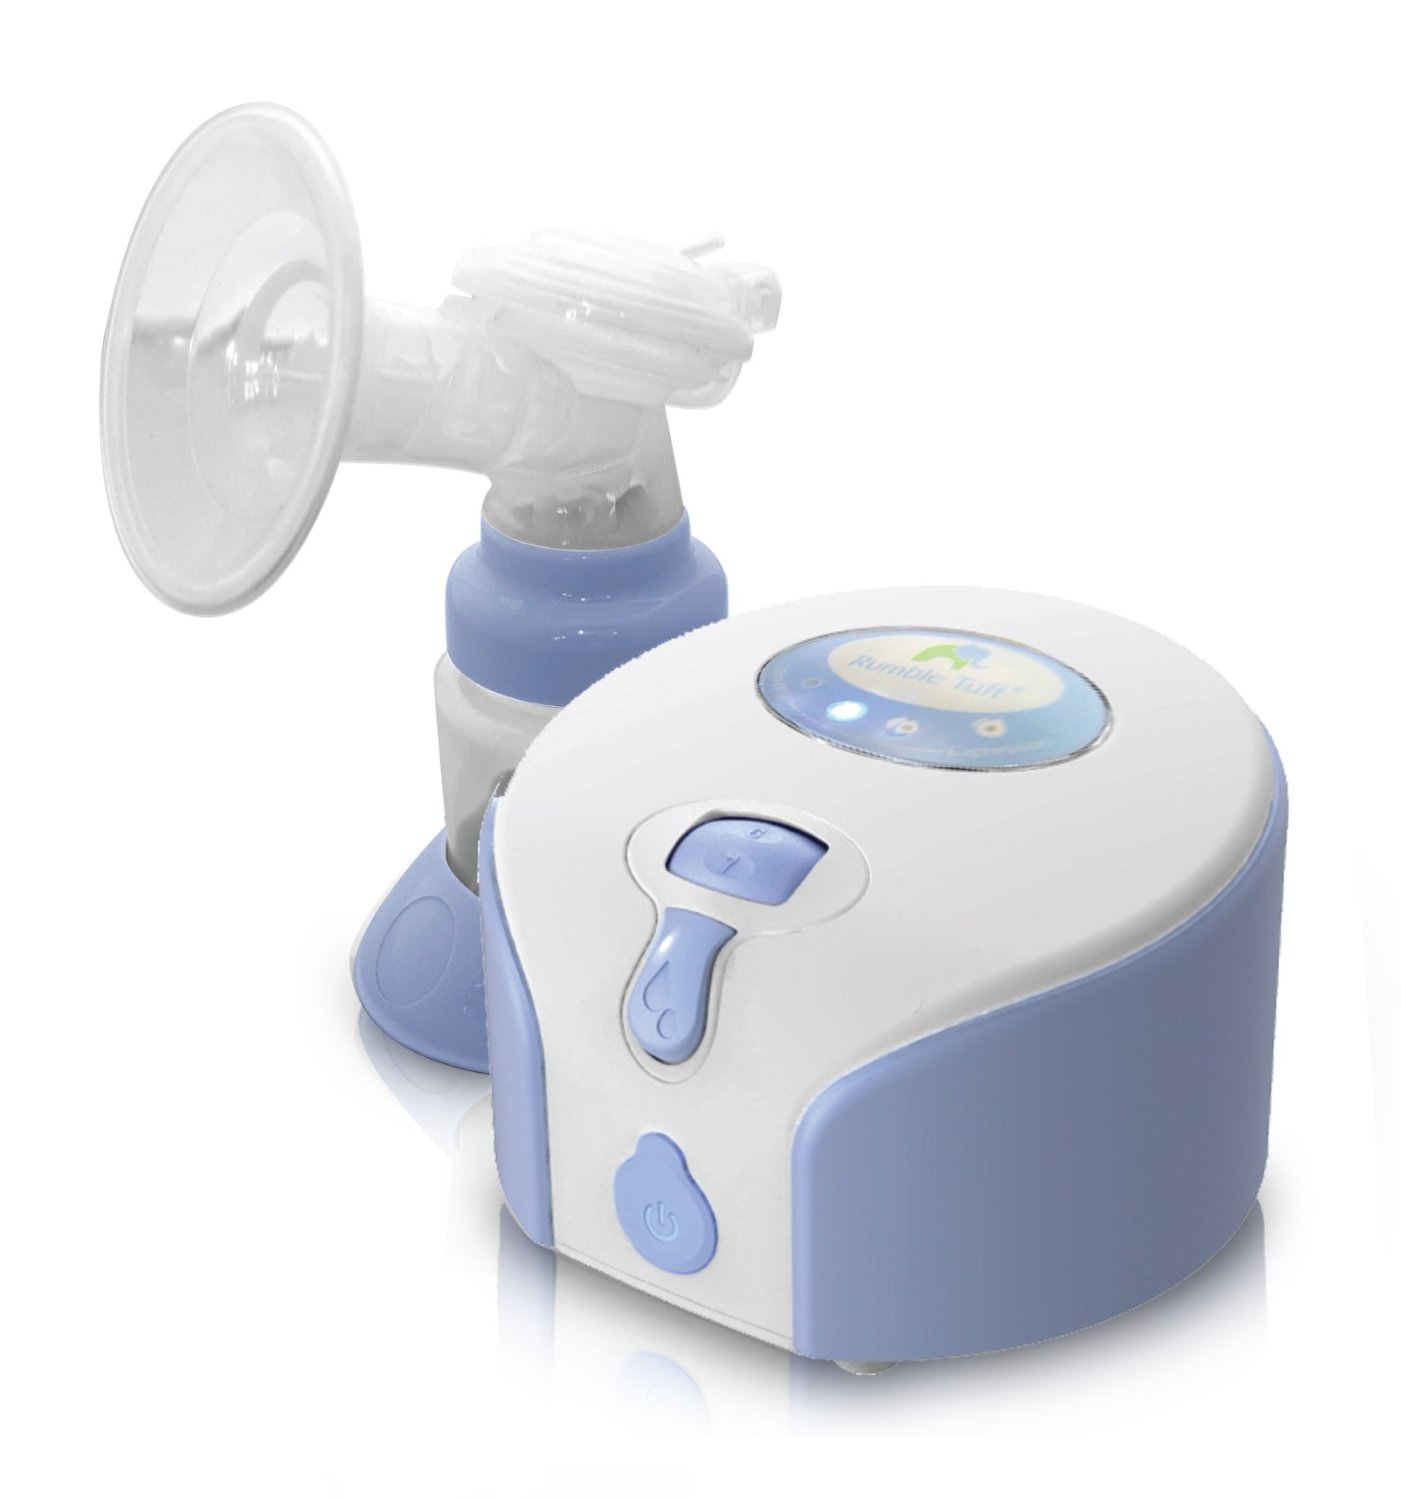 Rumble Tuff PA200S Easy Express Electric Breast Pump